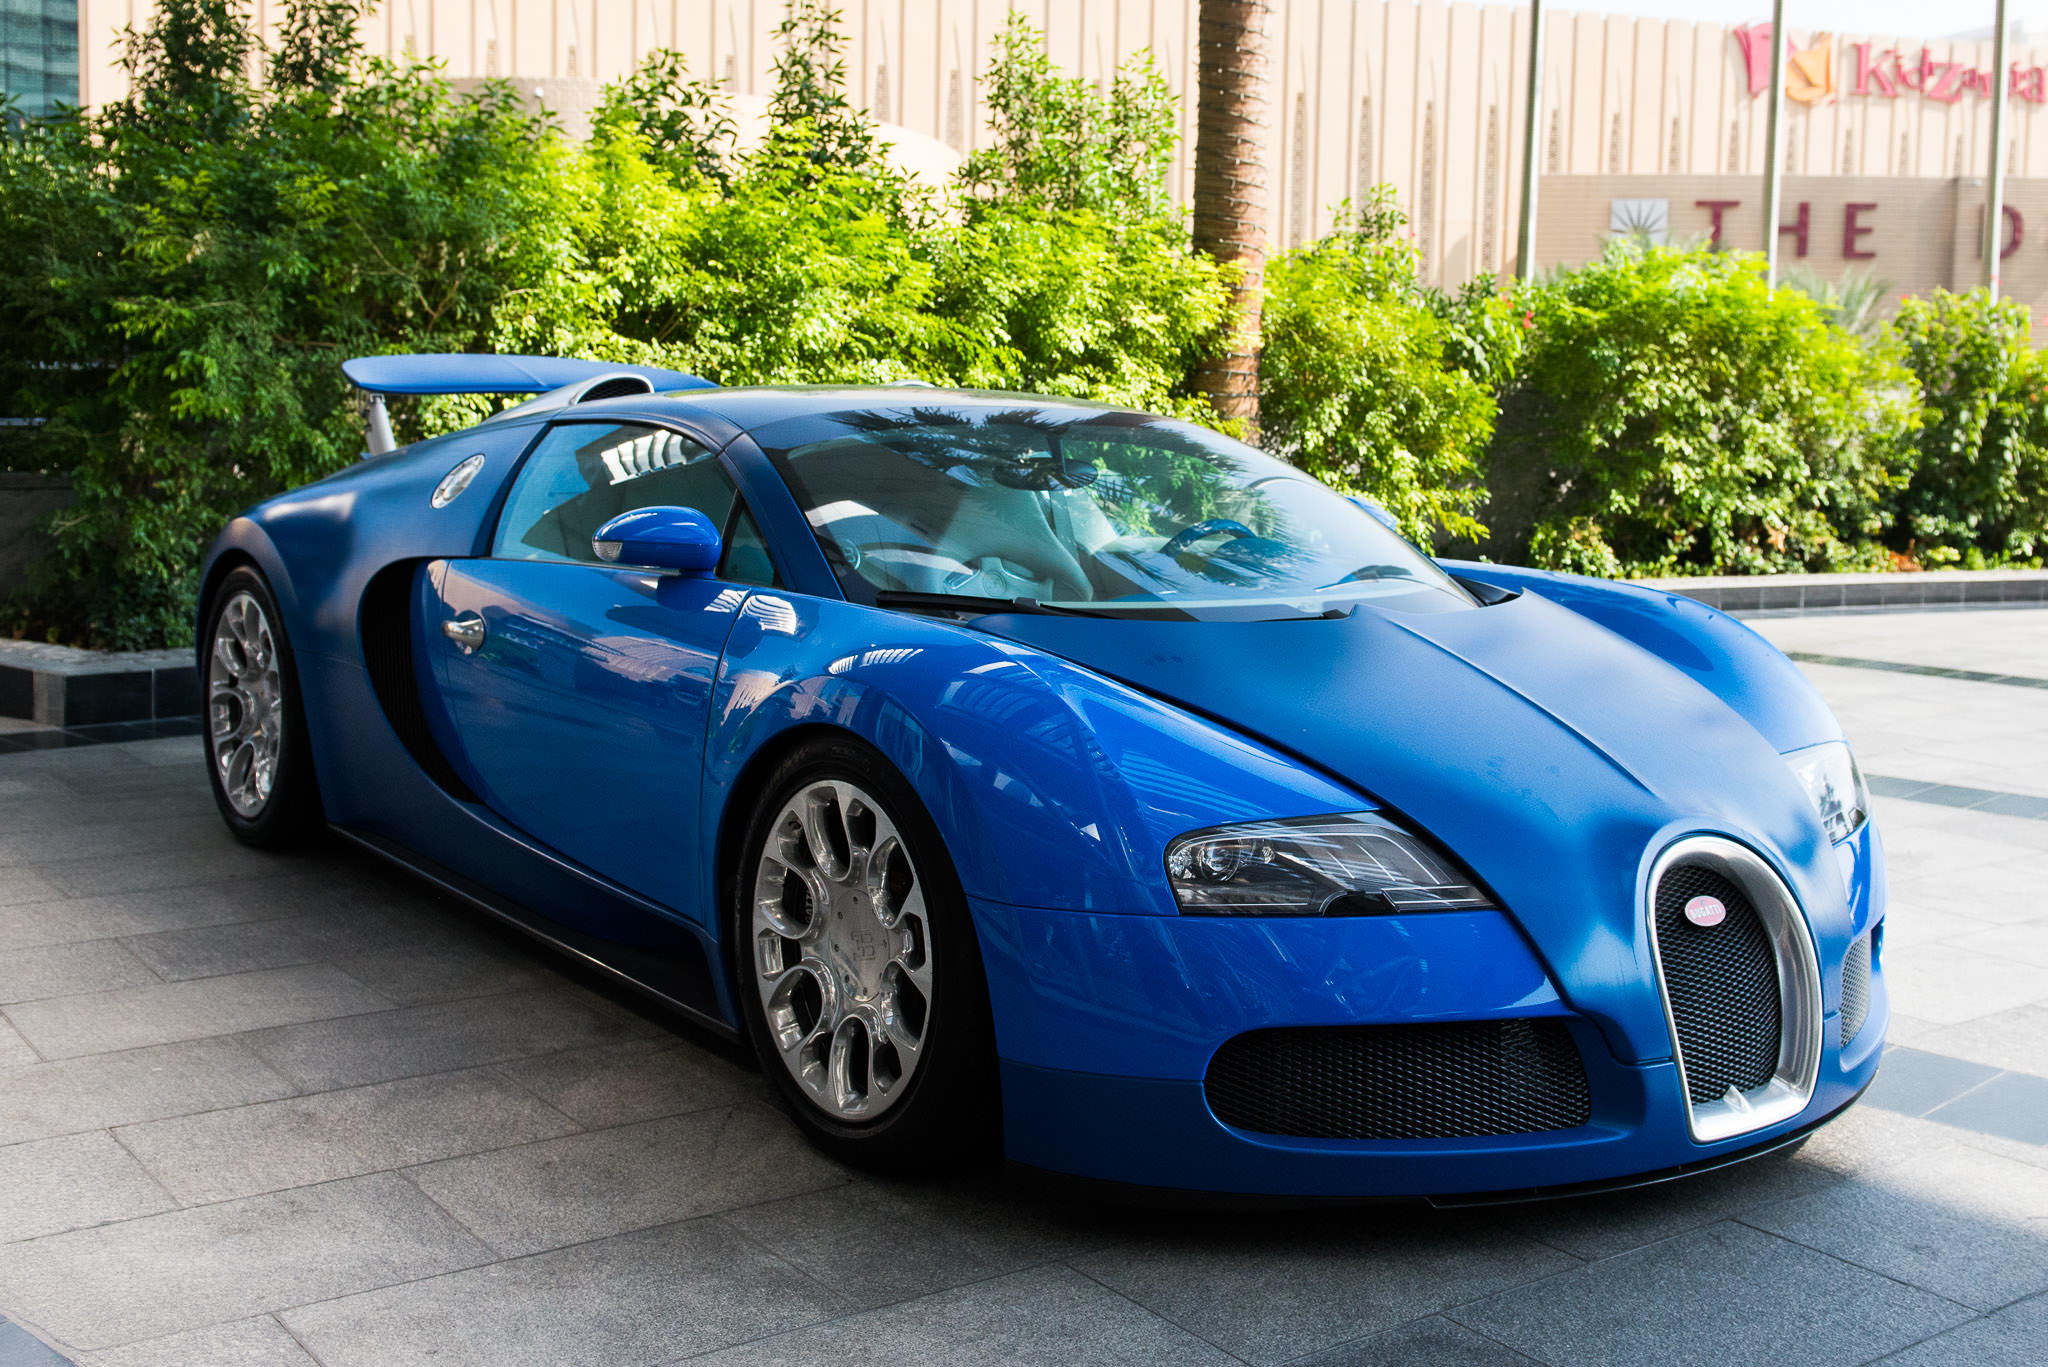 Bugatti Veyron - fastest street-legal car in the world